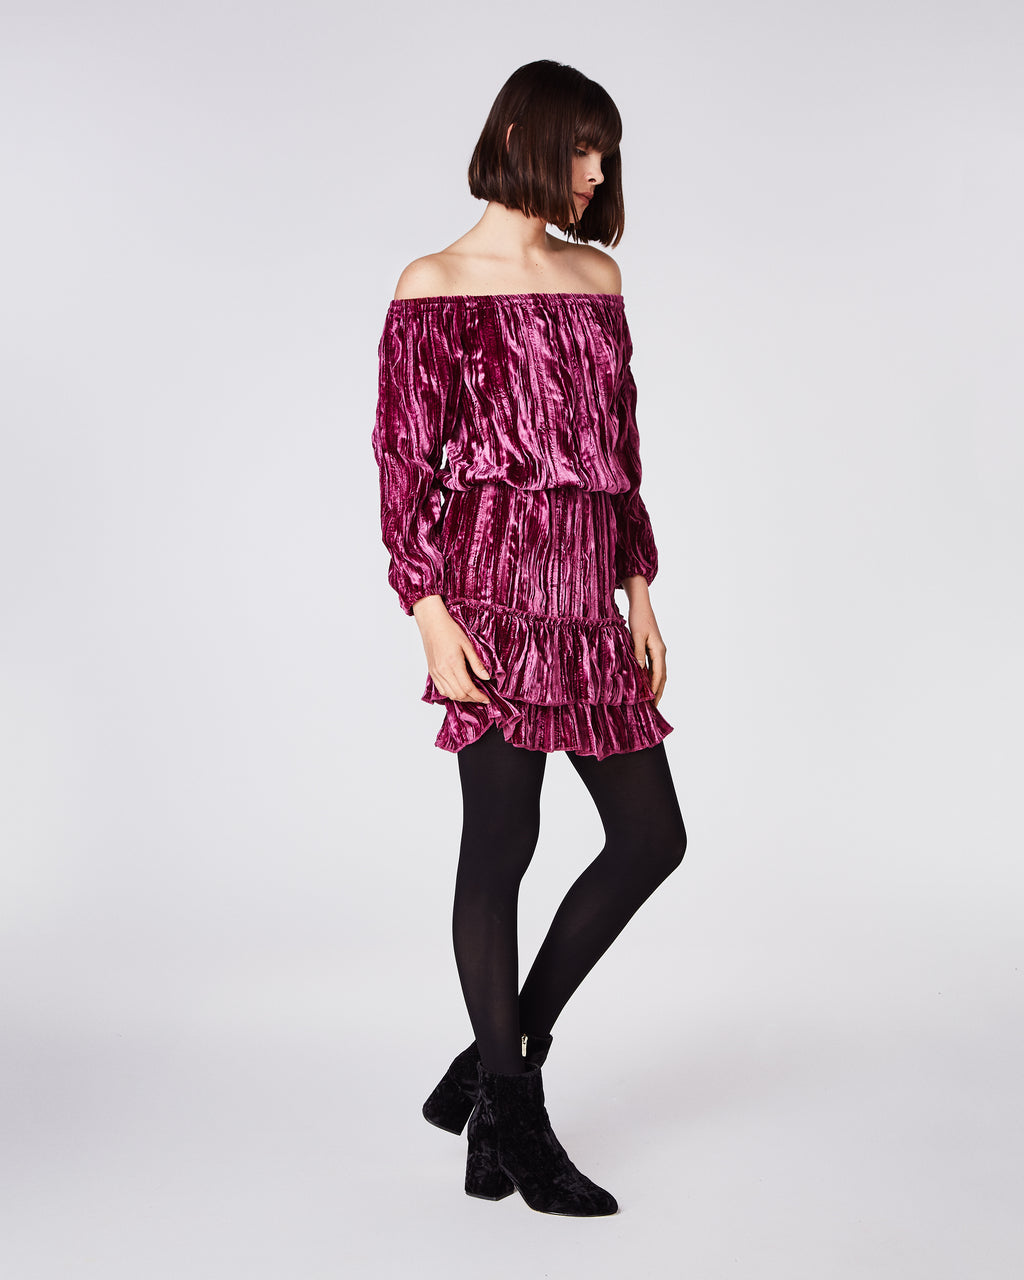 BP10240 - CRINKLED VELVET SMOCKED DRESS - dresses - short - In a soft velvet, this off the shoulder dress clinches at the waist and falls mid-thigh. Perfect for your holiday cocktail events Fully lined.